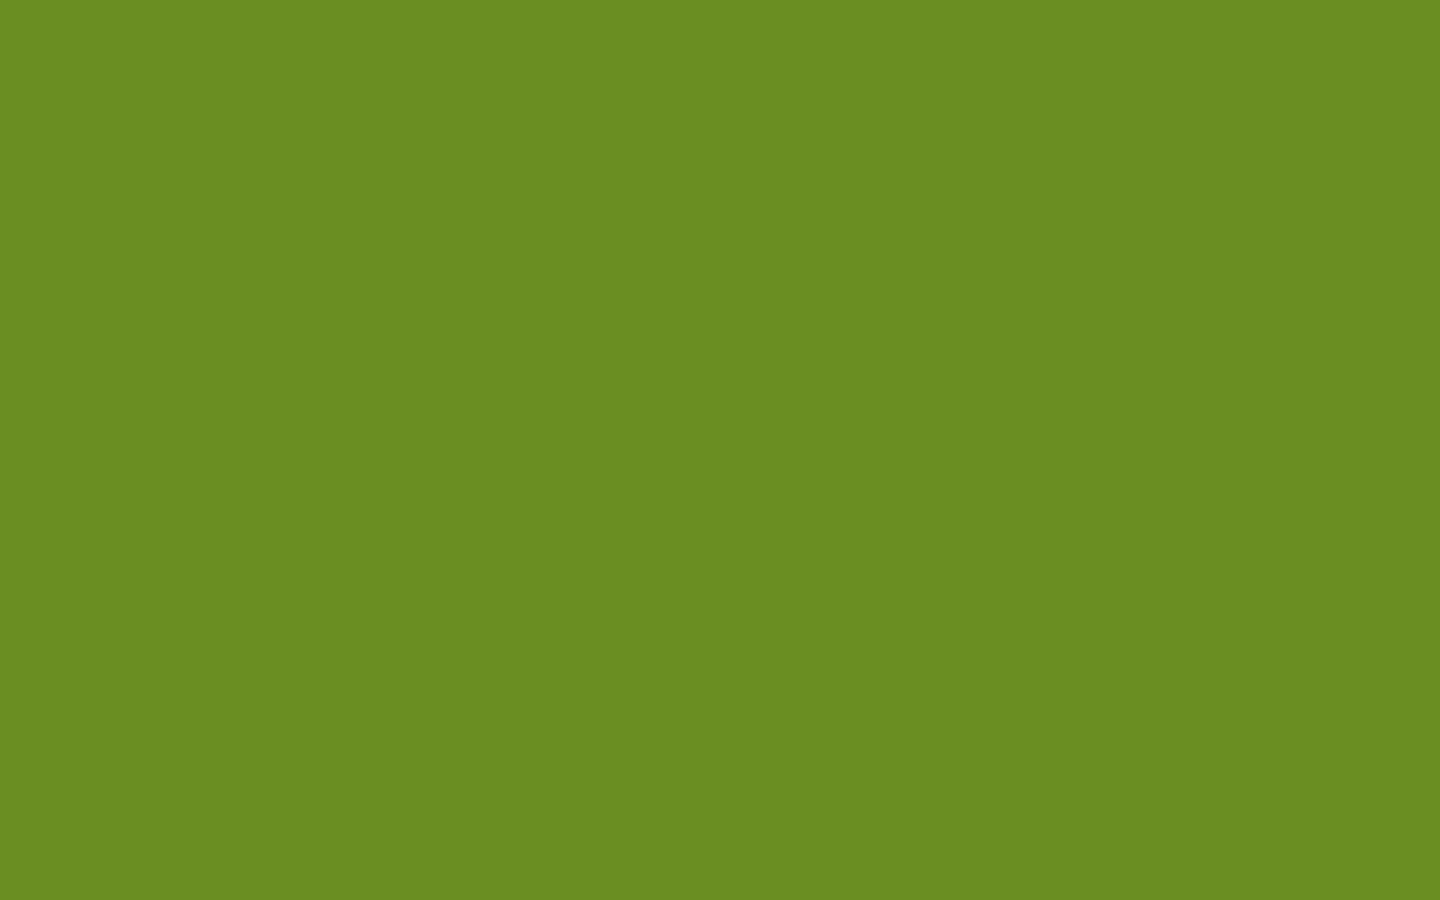 1440x900 Olive Drab Number Three Solid Color Background